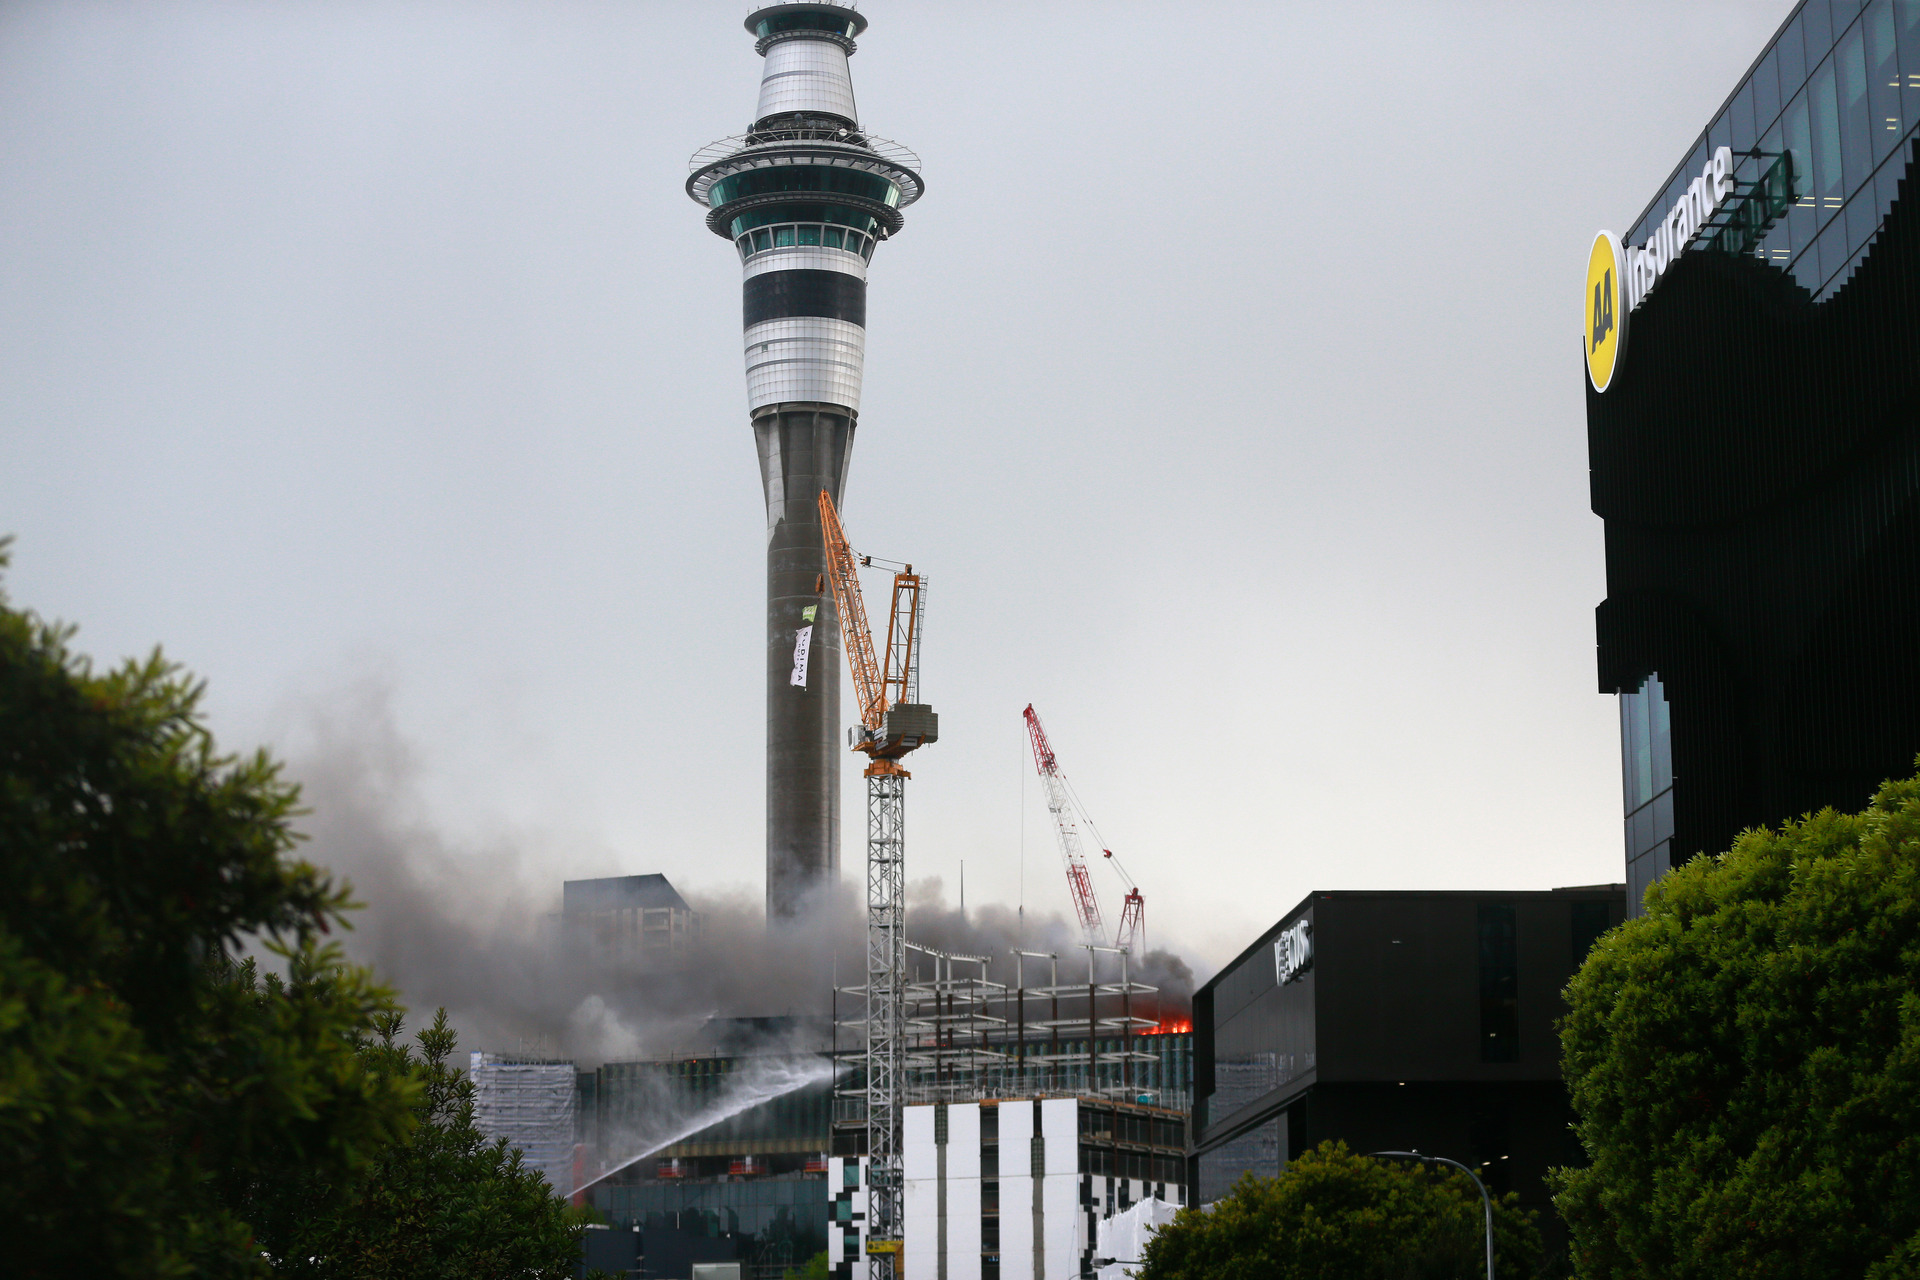 'I was outraged': SkyCity staff told to use annual leave after fire